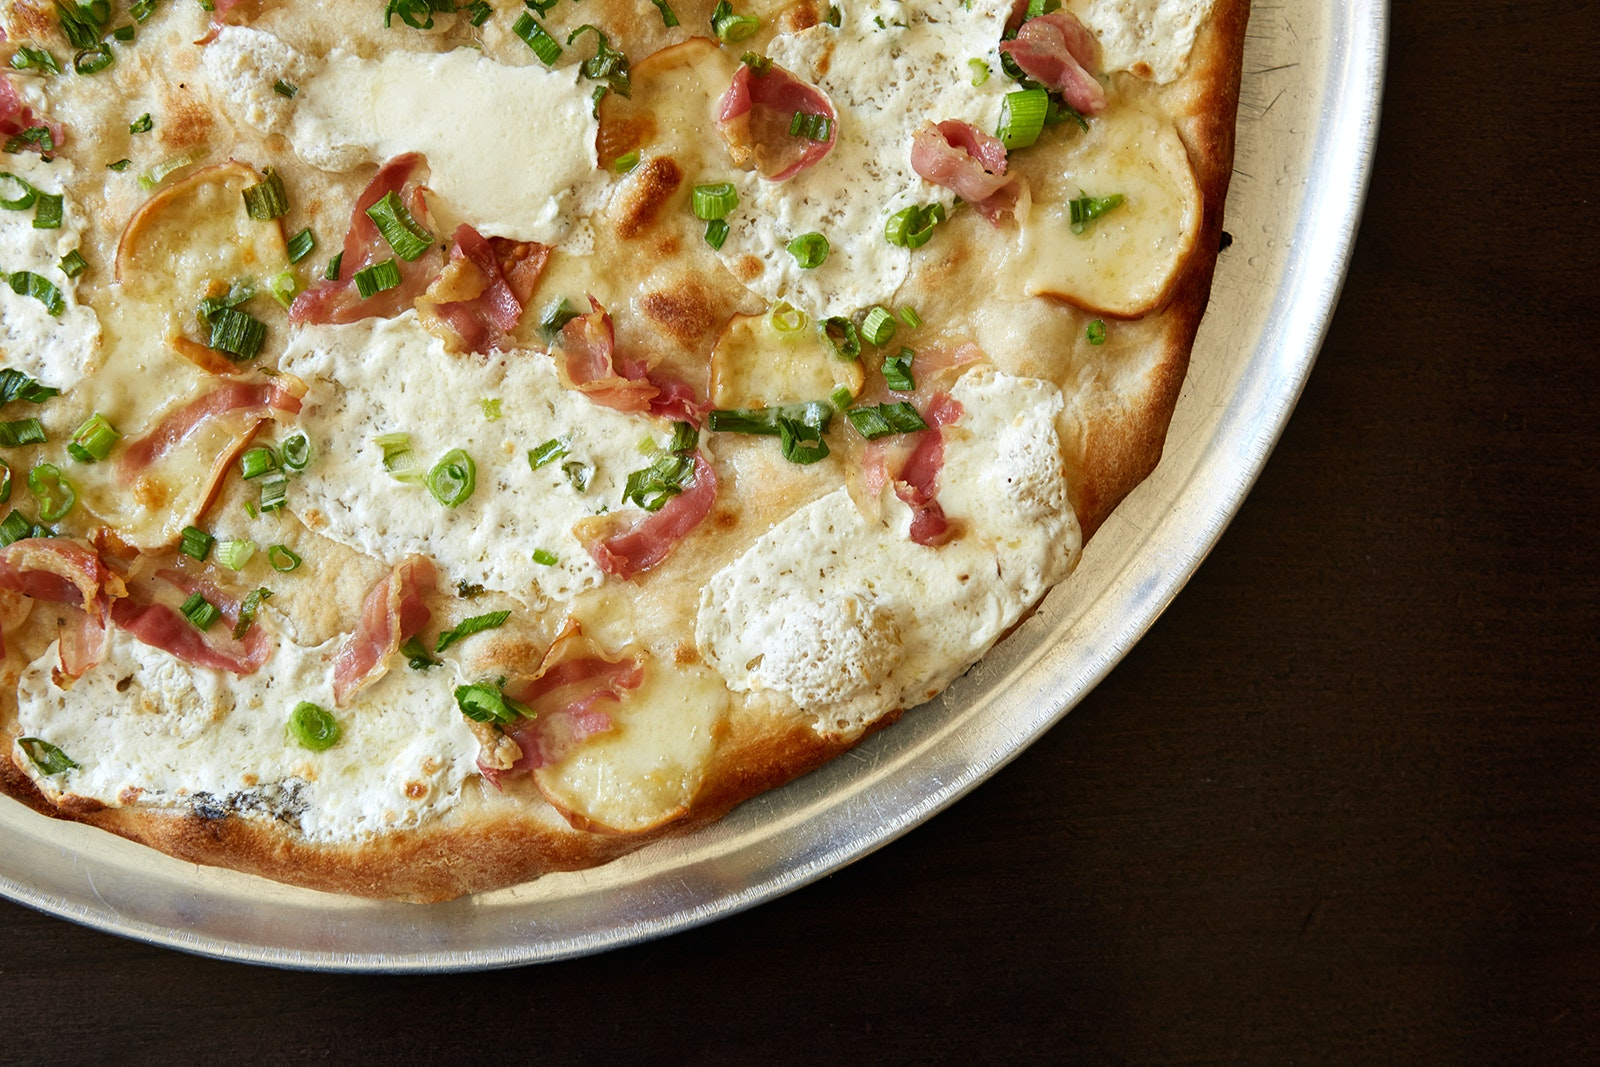 Steps from the Brooklyn Bridge, Patsy Grimaldi serves pies from the restaurant's original coal-fired oven at Juliana's.